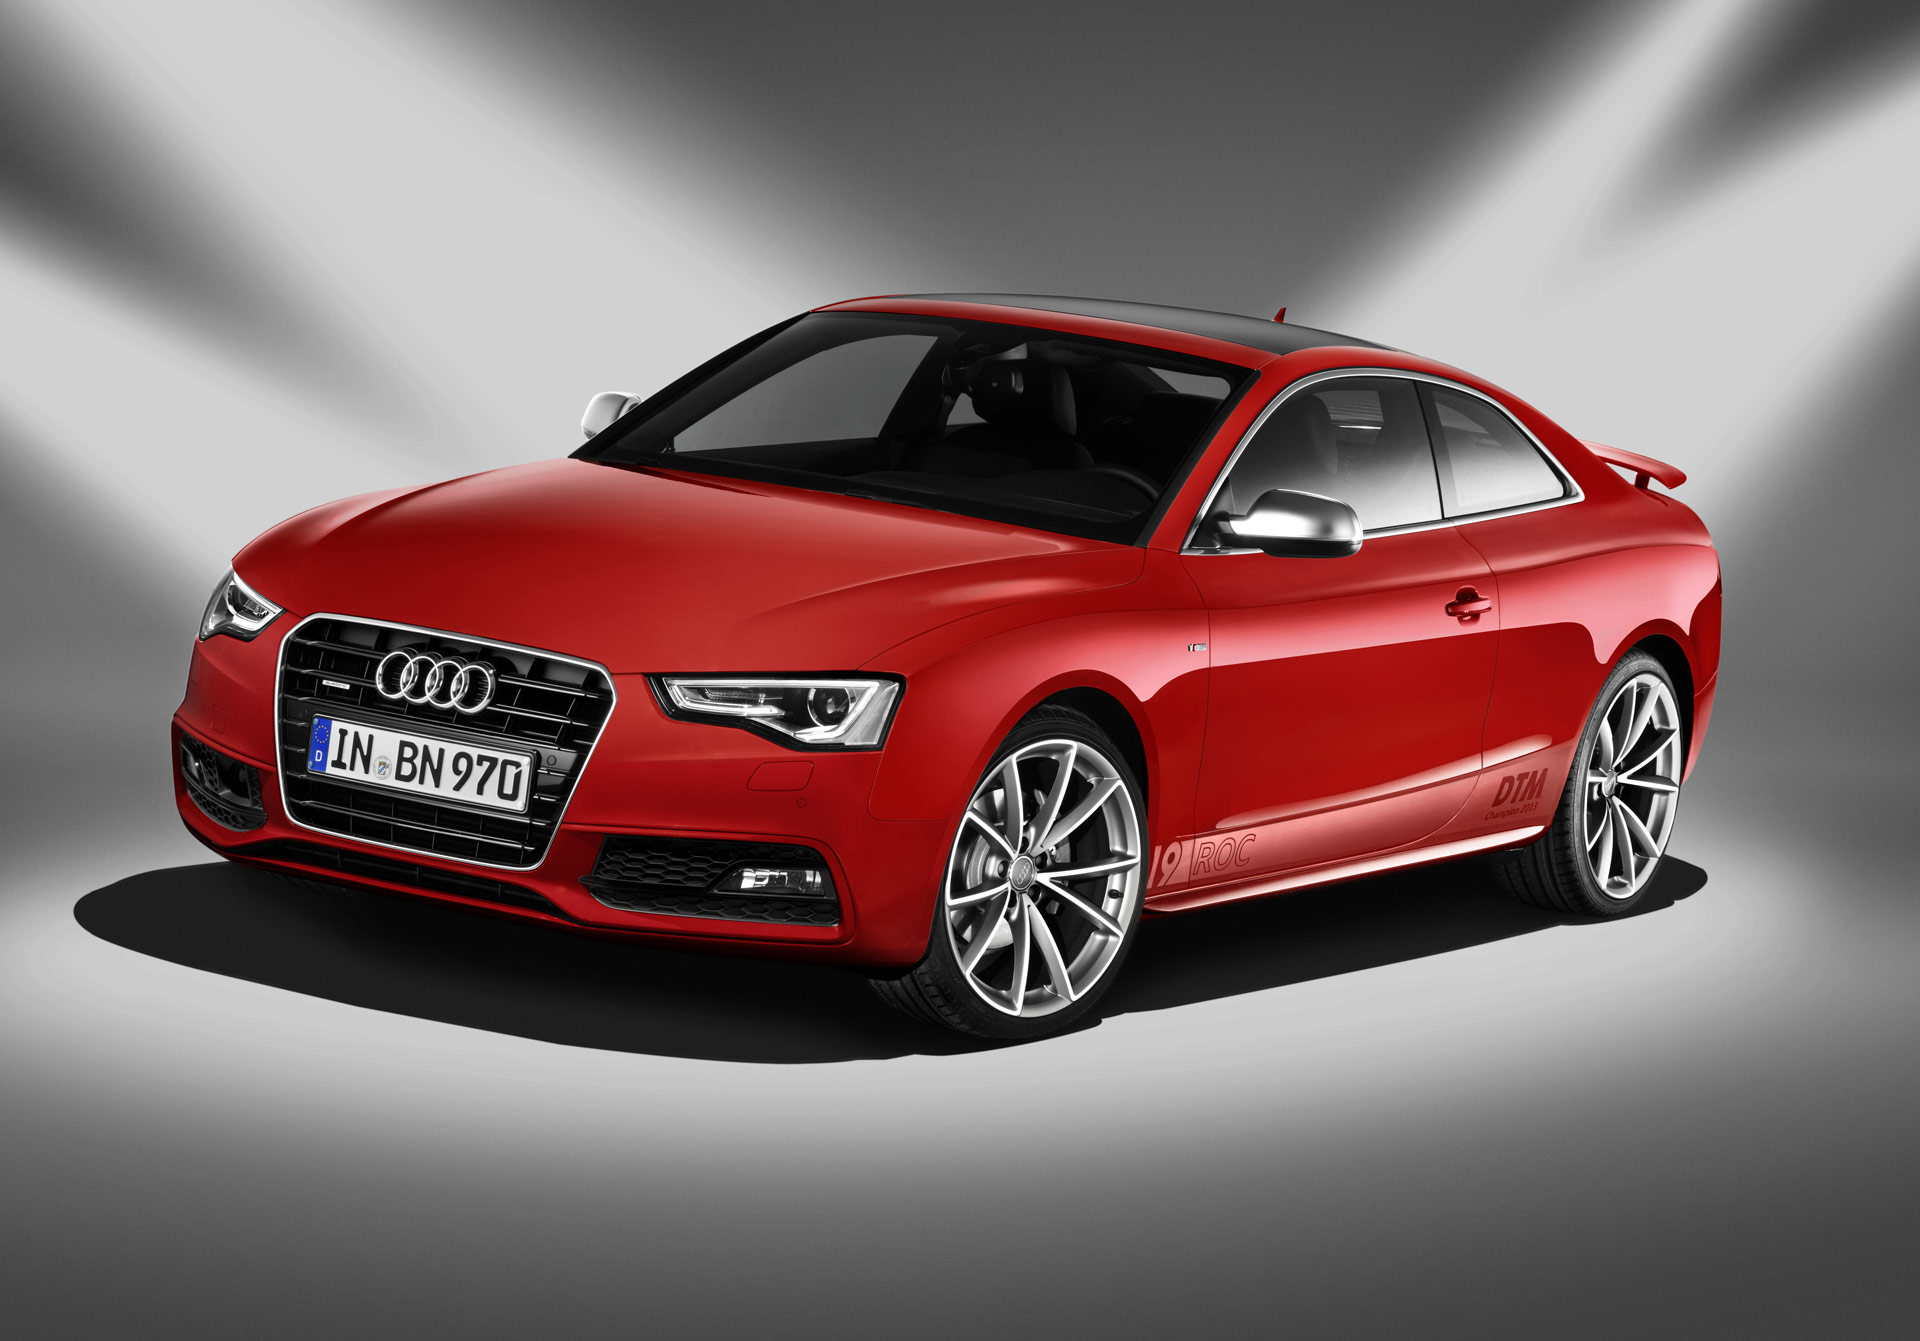 2014 Audi A5 Dtm Edition News And Information